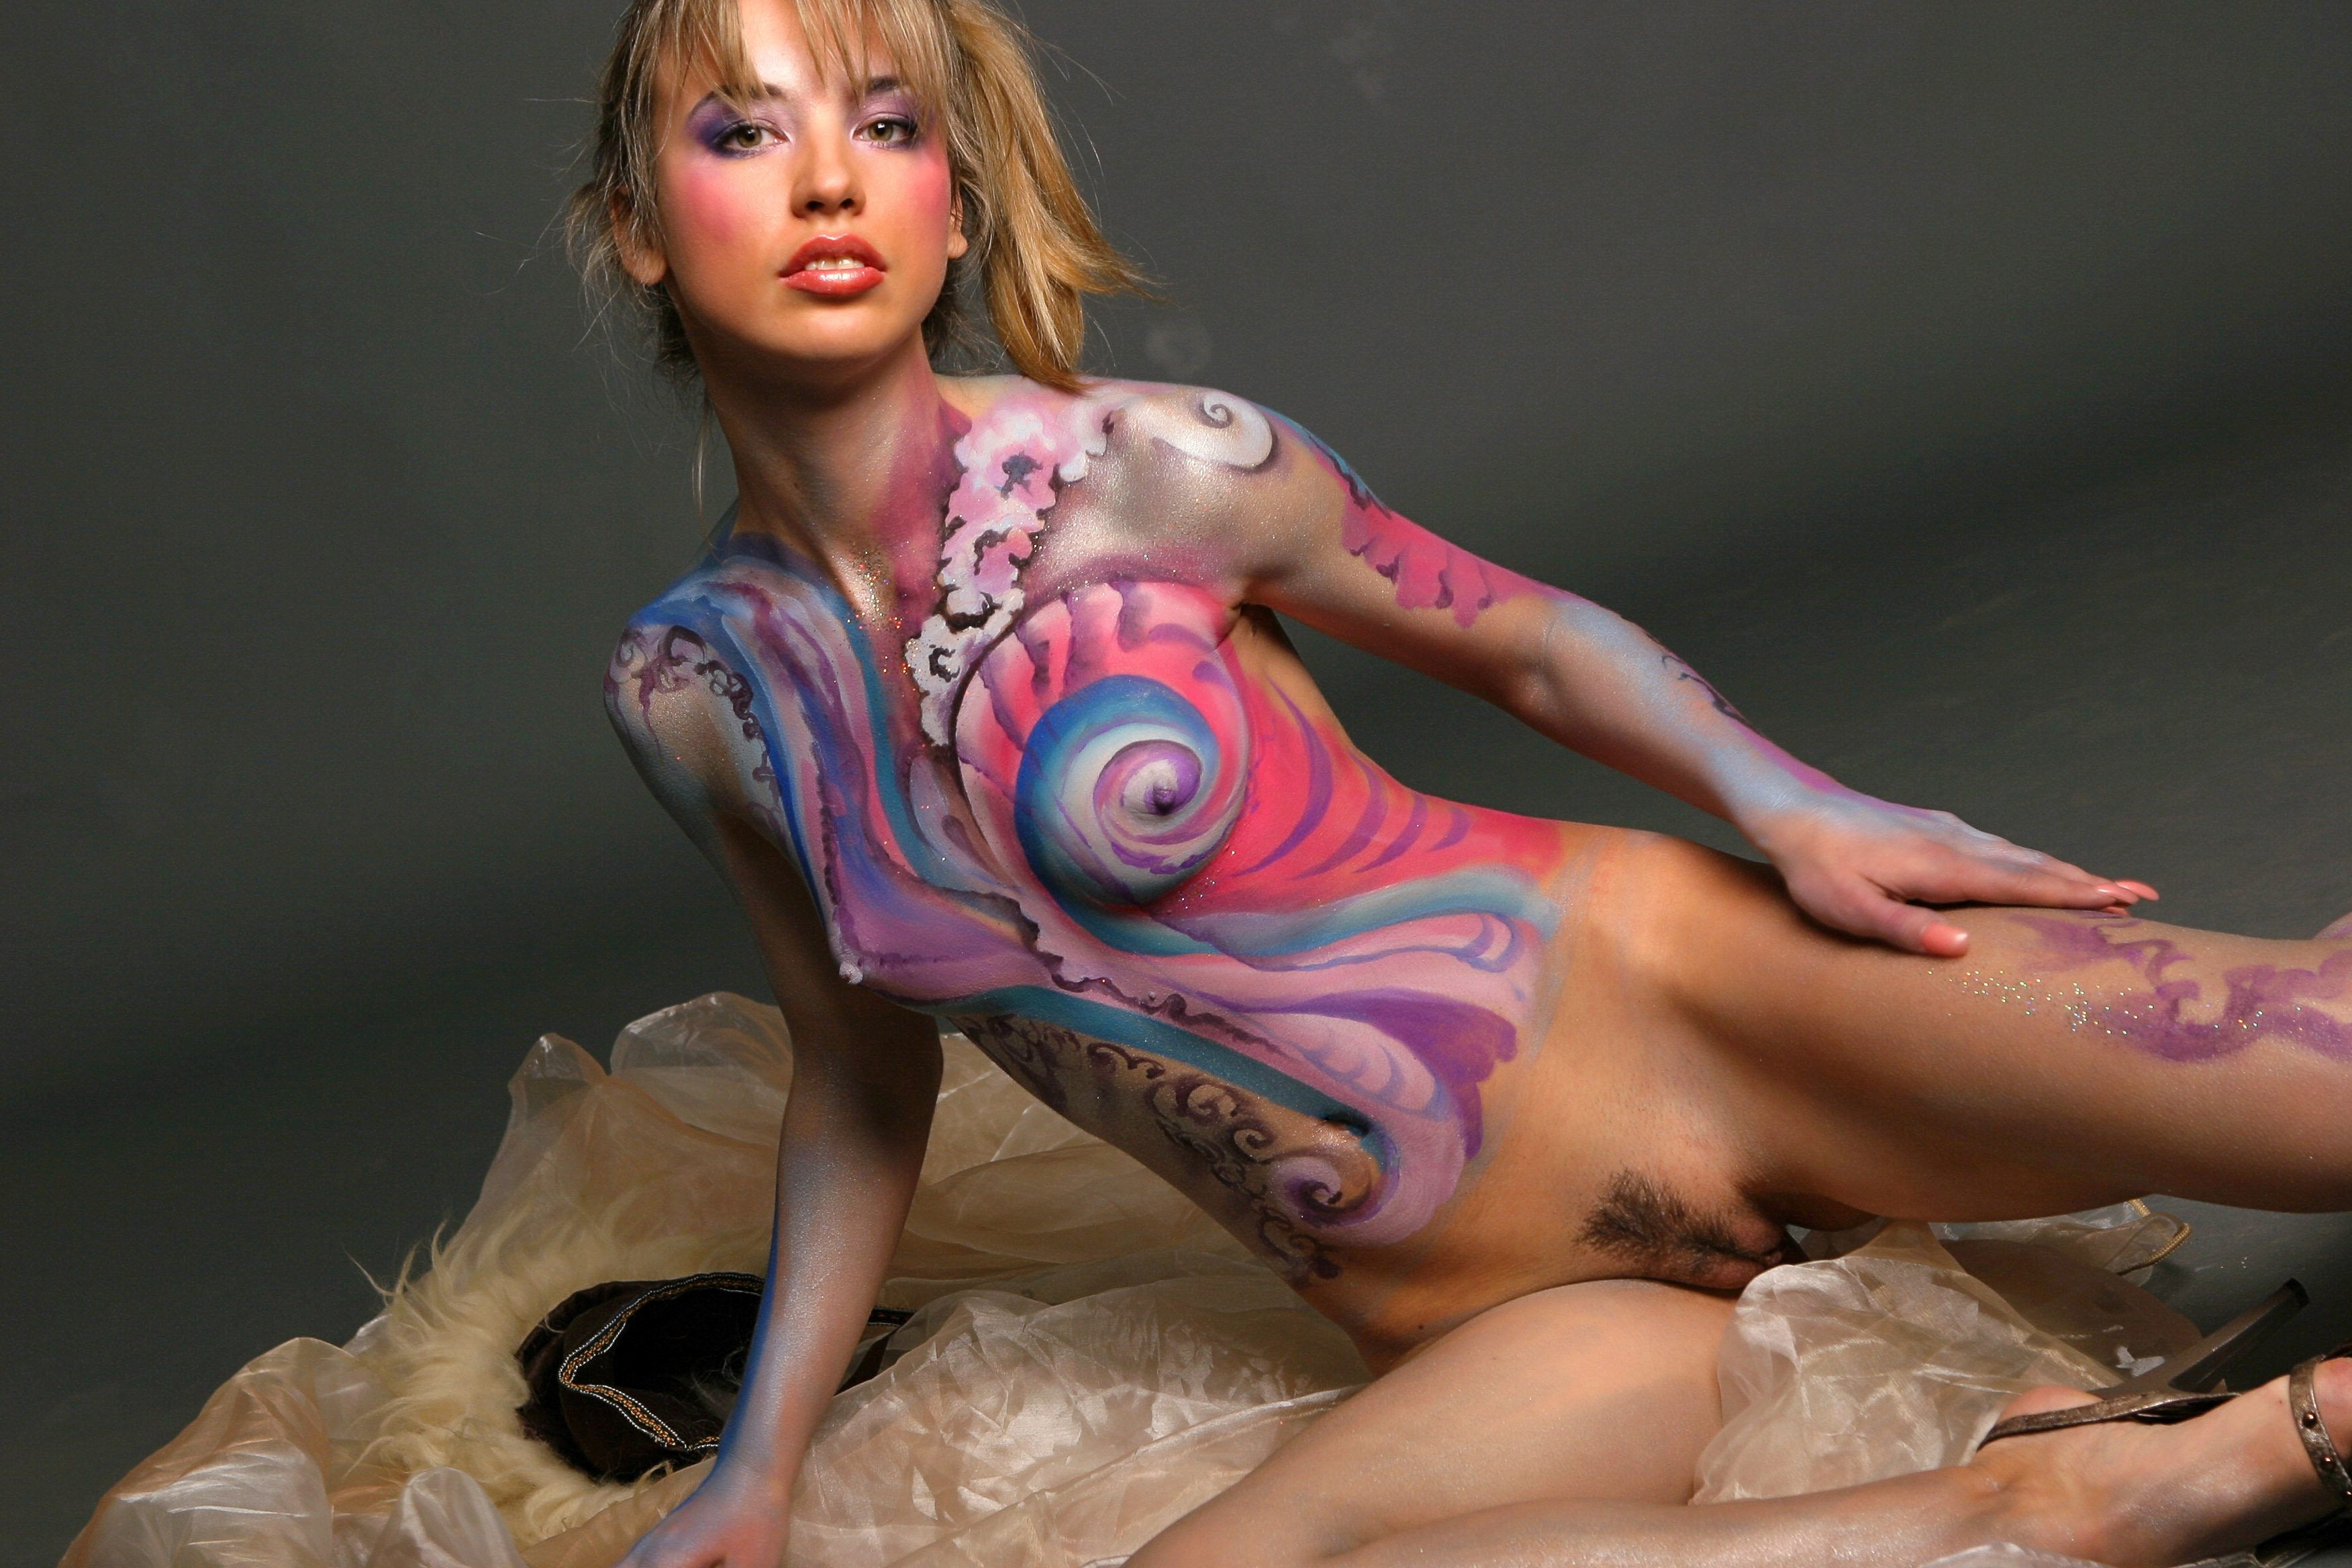 Opinion Nude body painted girl